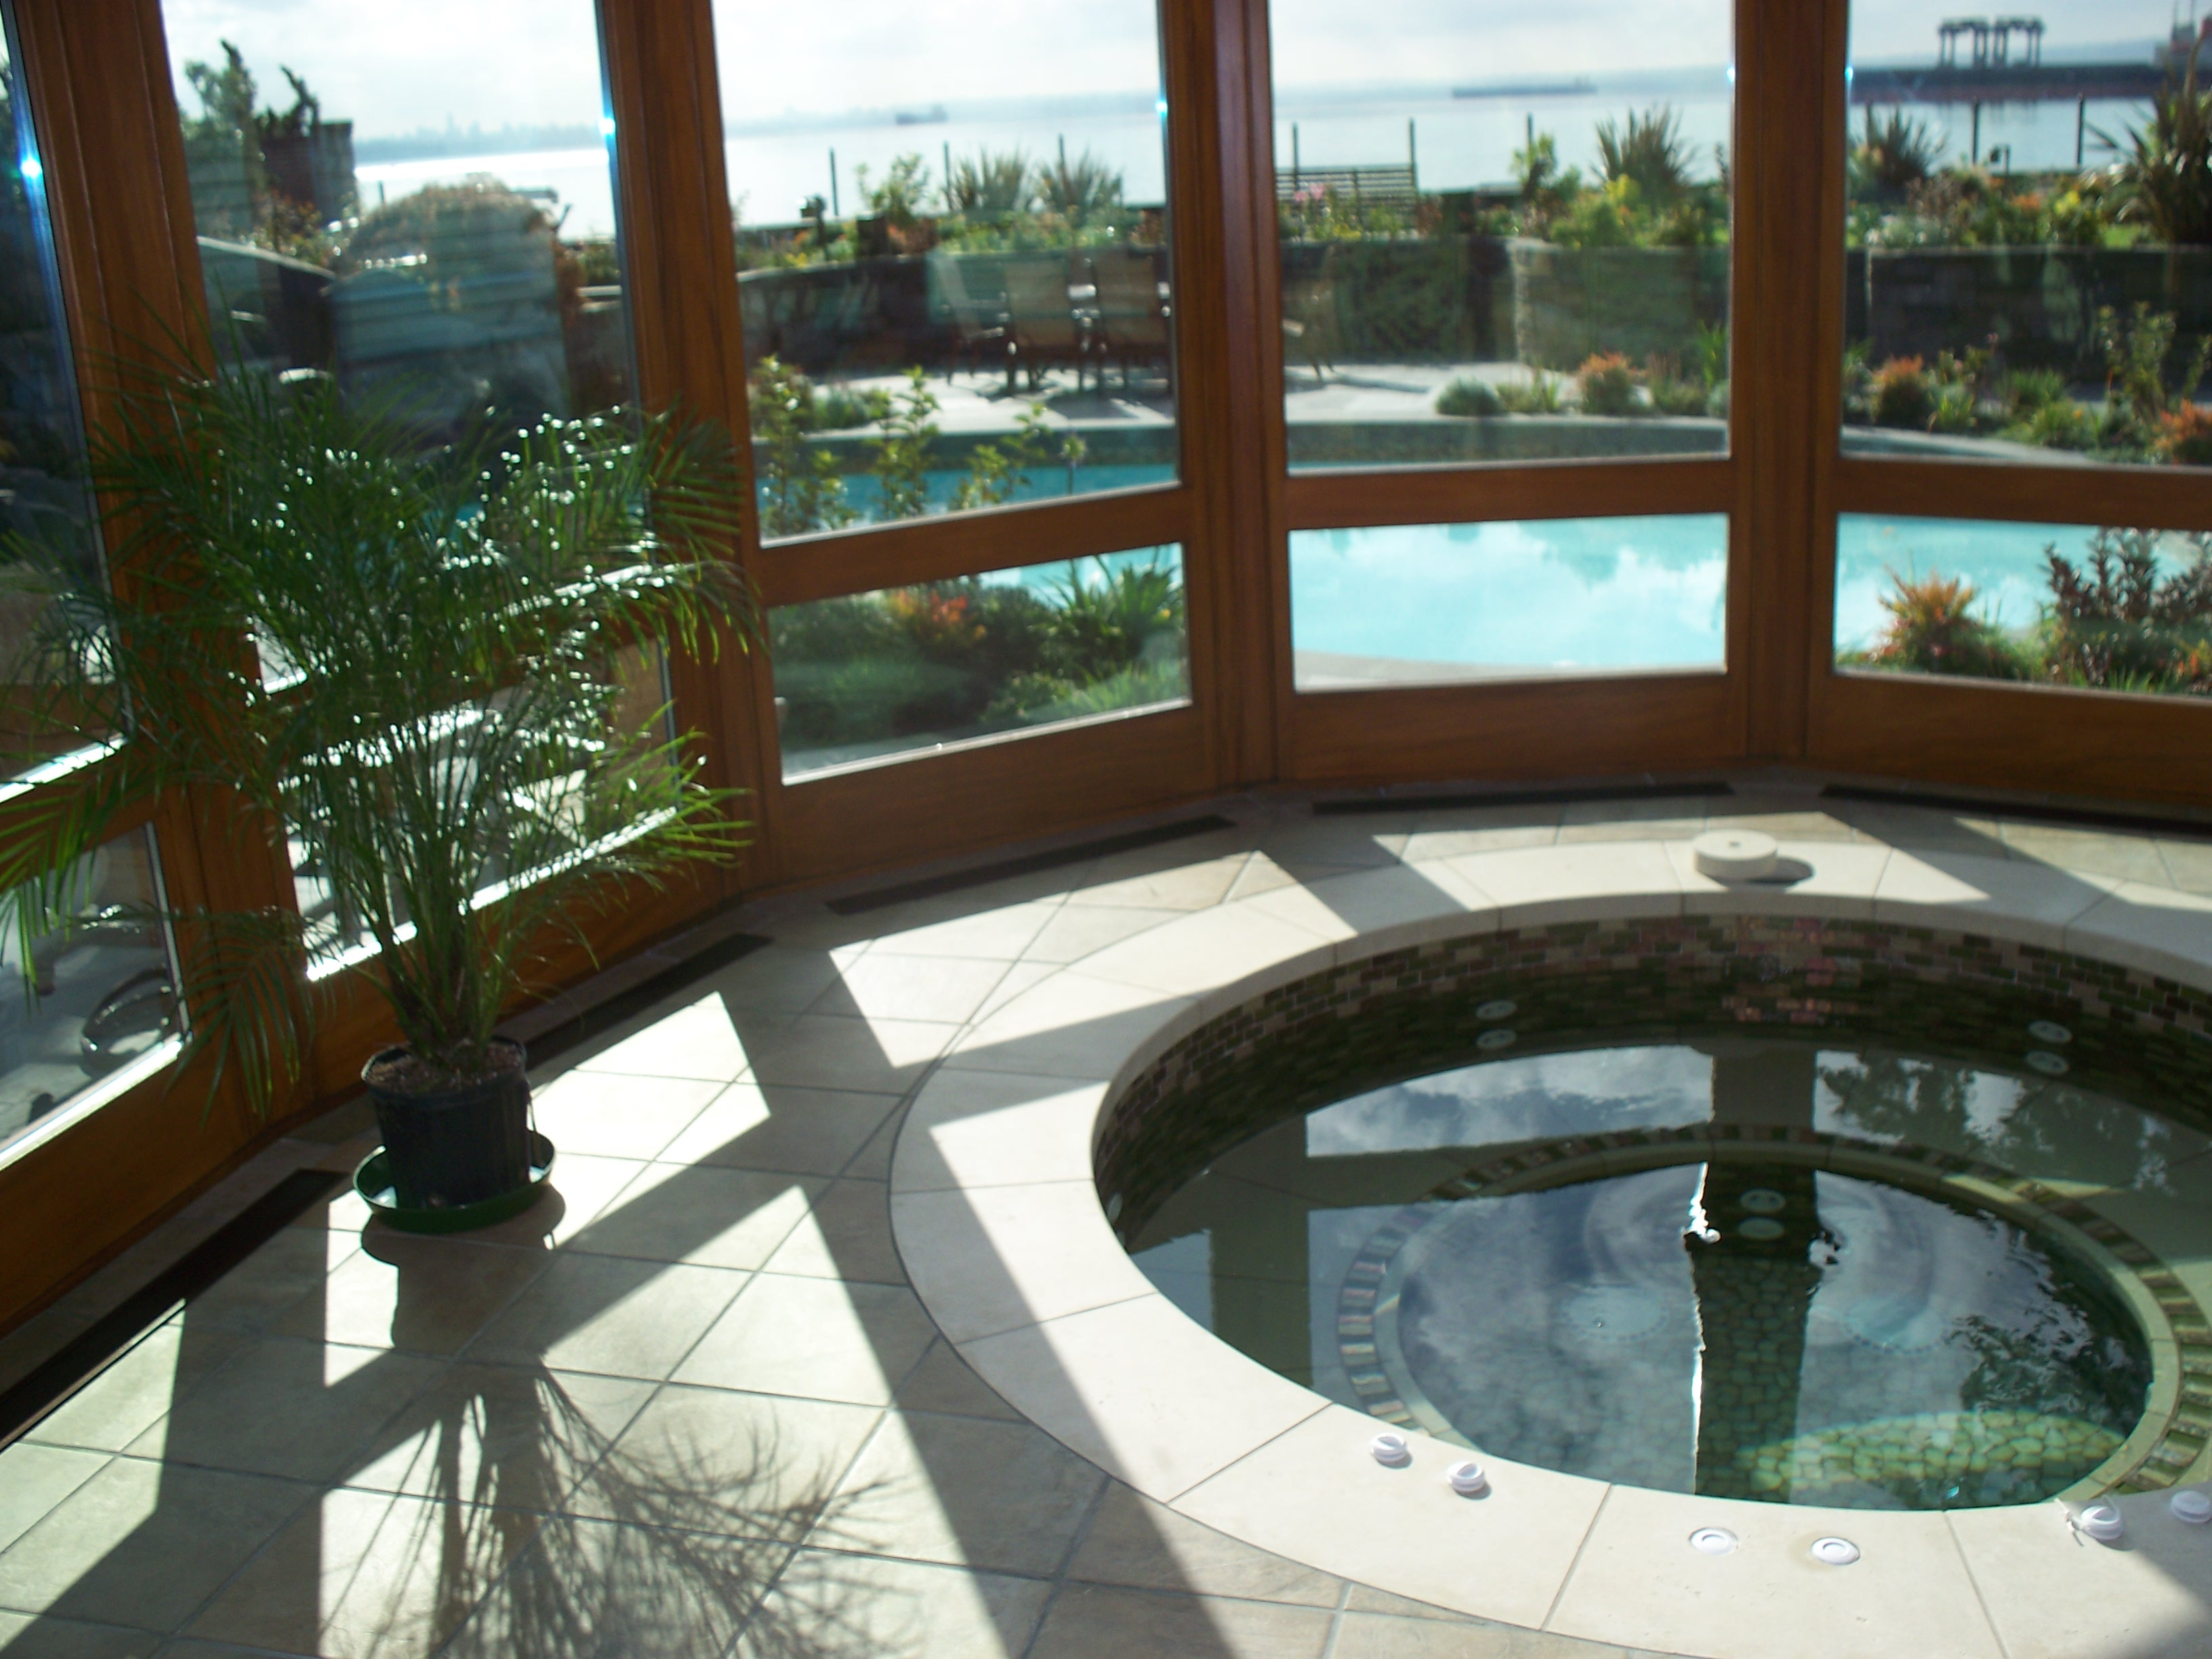 on tub tracy are modesto locations caldera spas market our spa you value best hot for tubs valley the searching visit showroom central